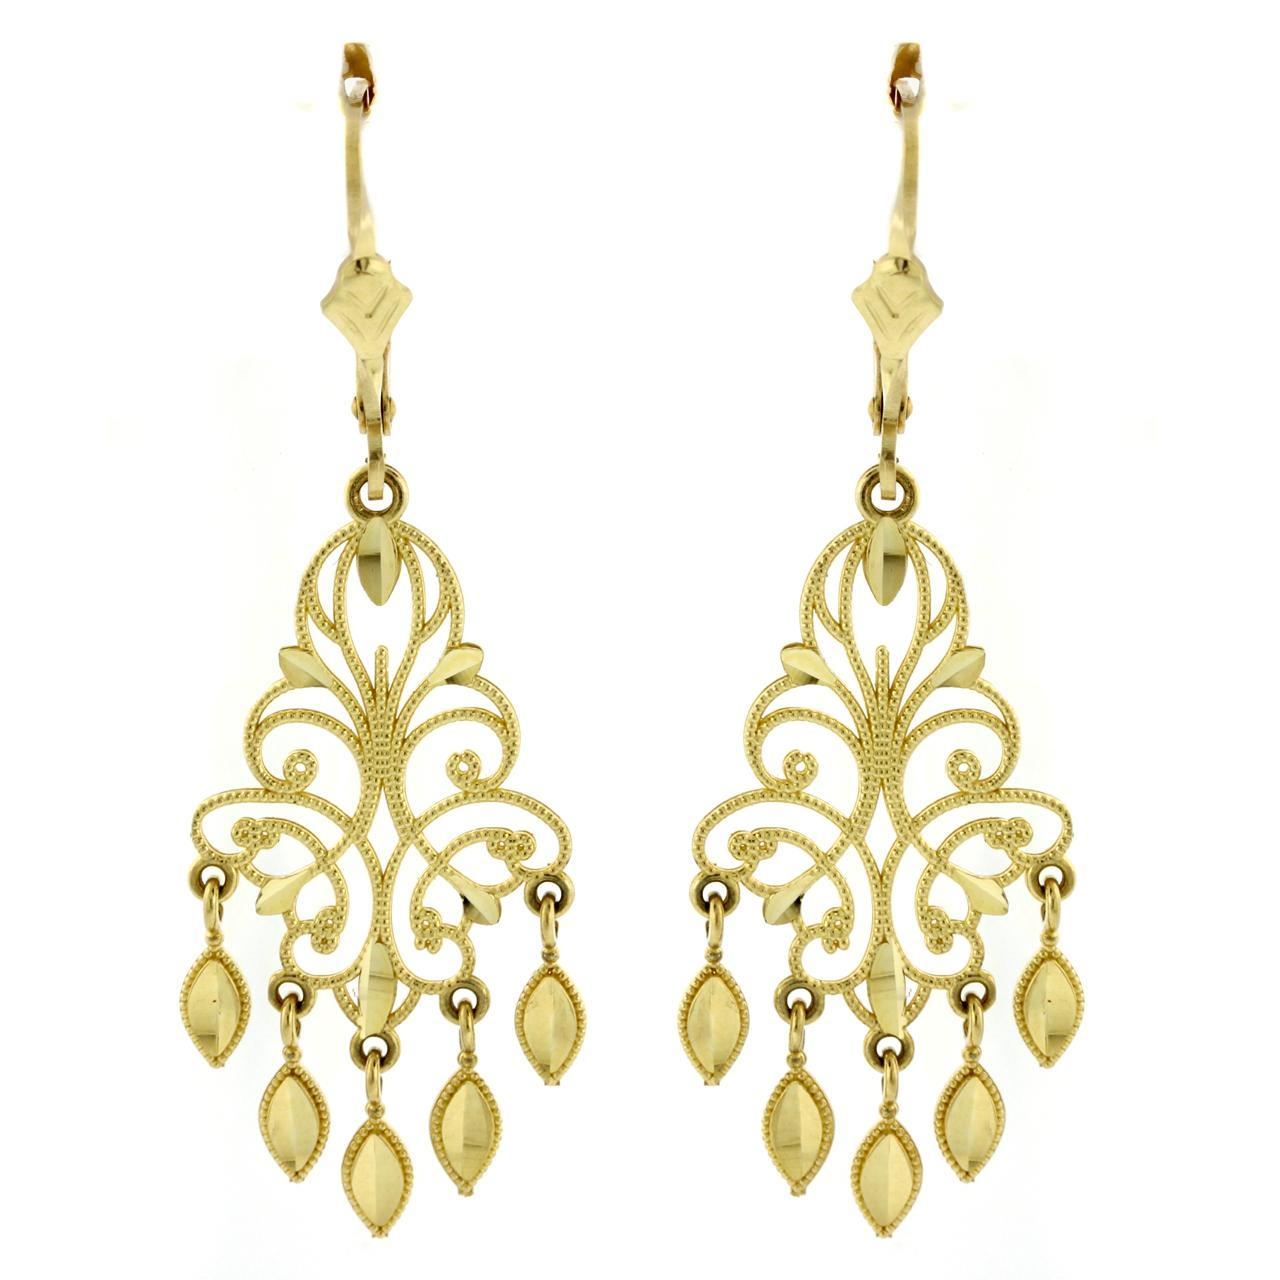 chandelier earrings costume jewelry car interior design